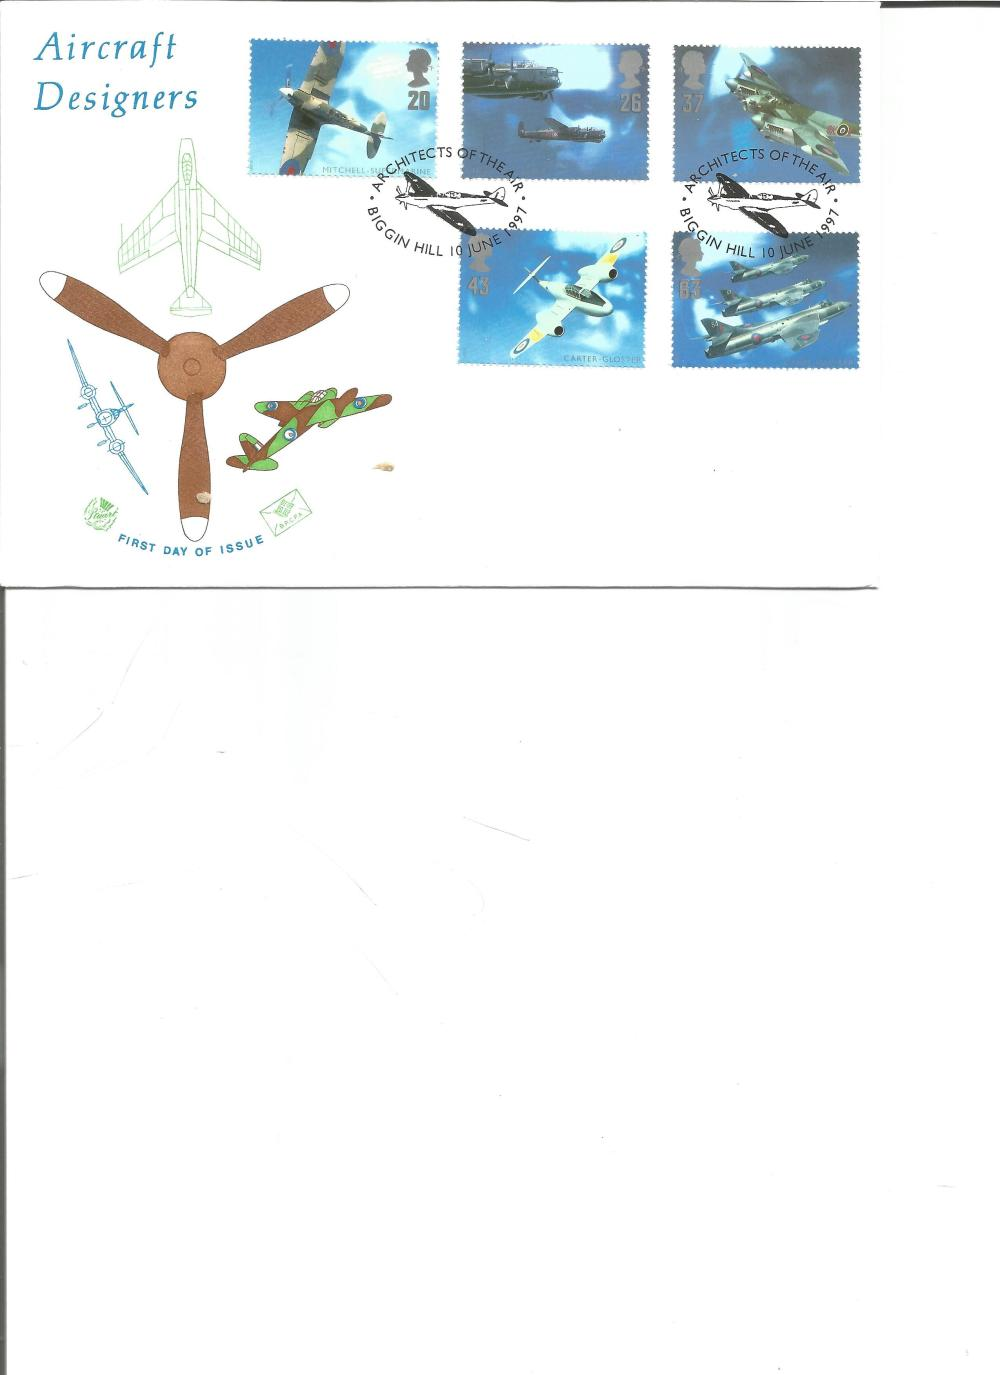 FDC Aircraft Designers c/w set of five commemorative stamps double PM Architects of the Air,